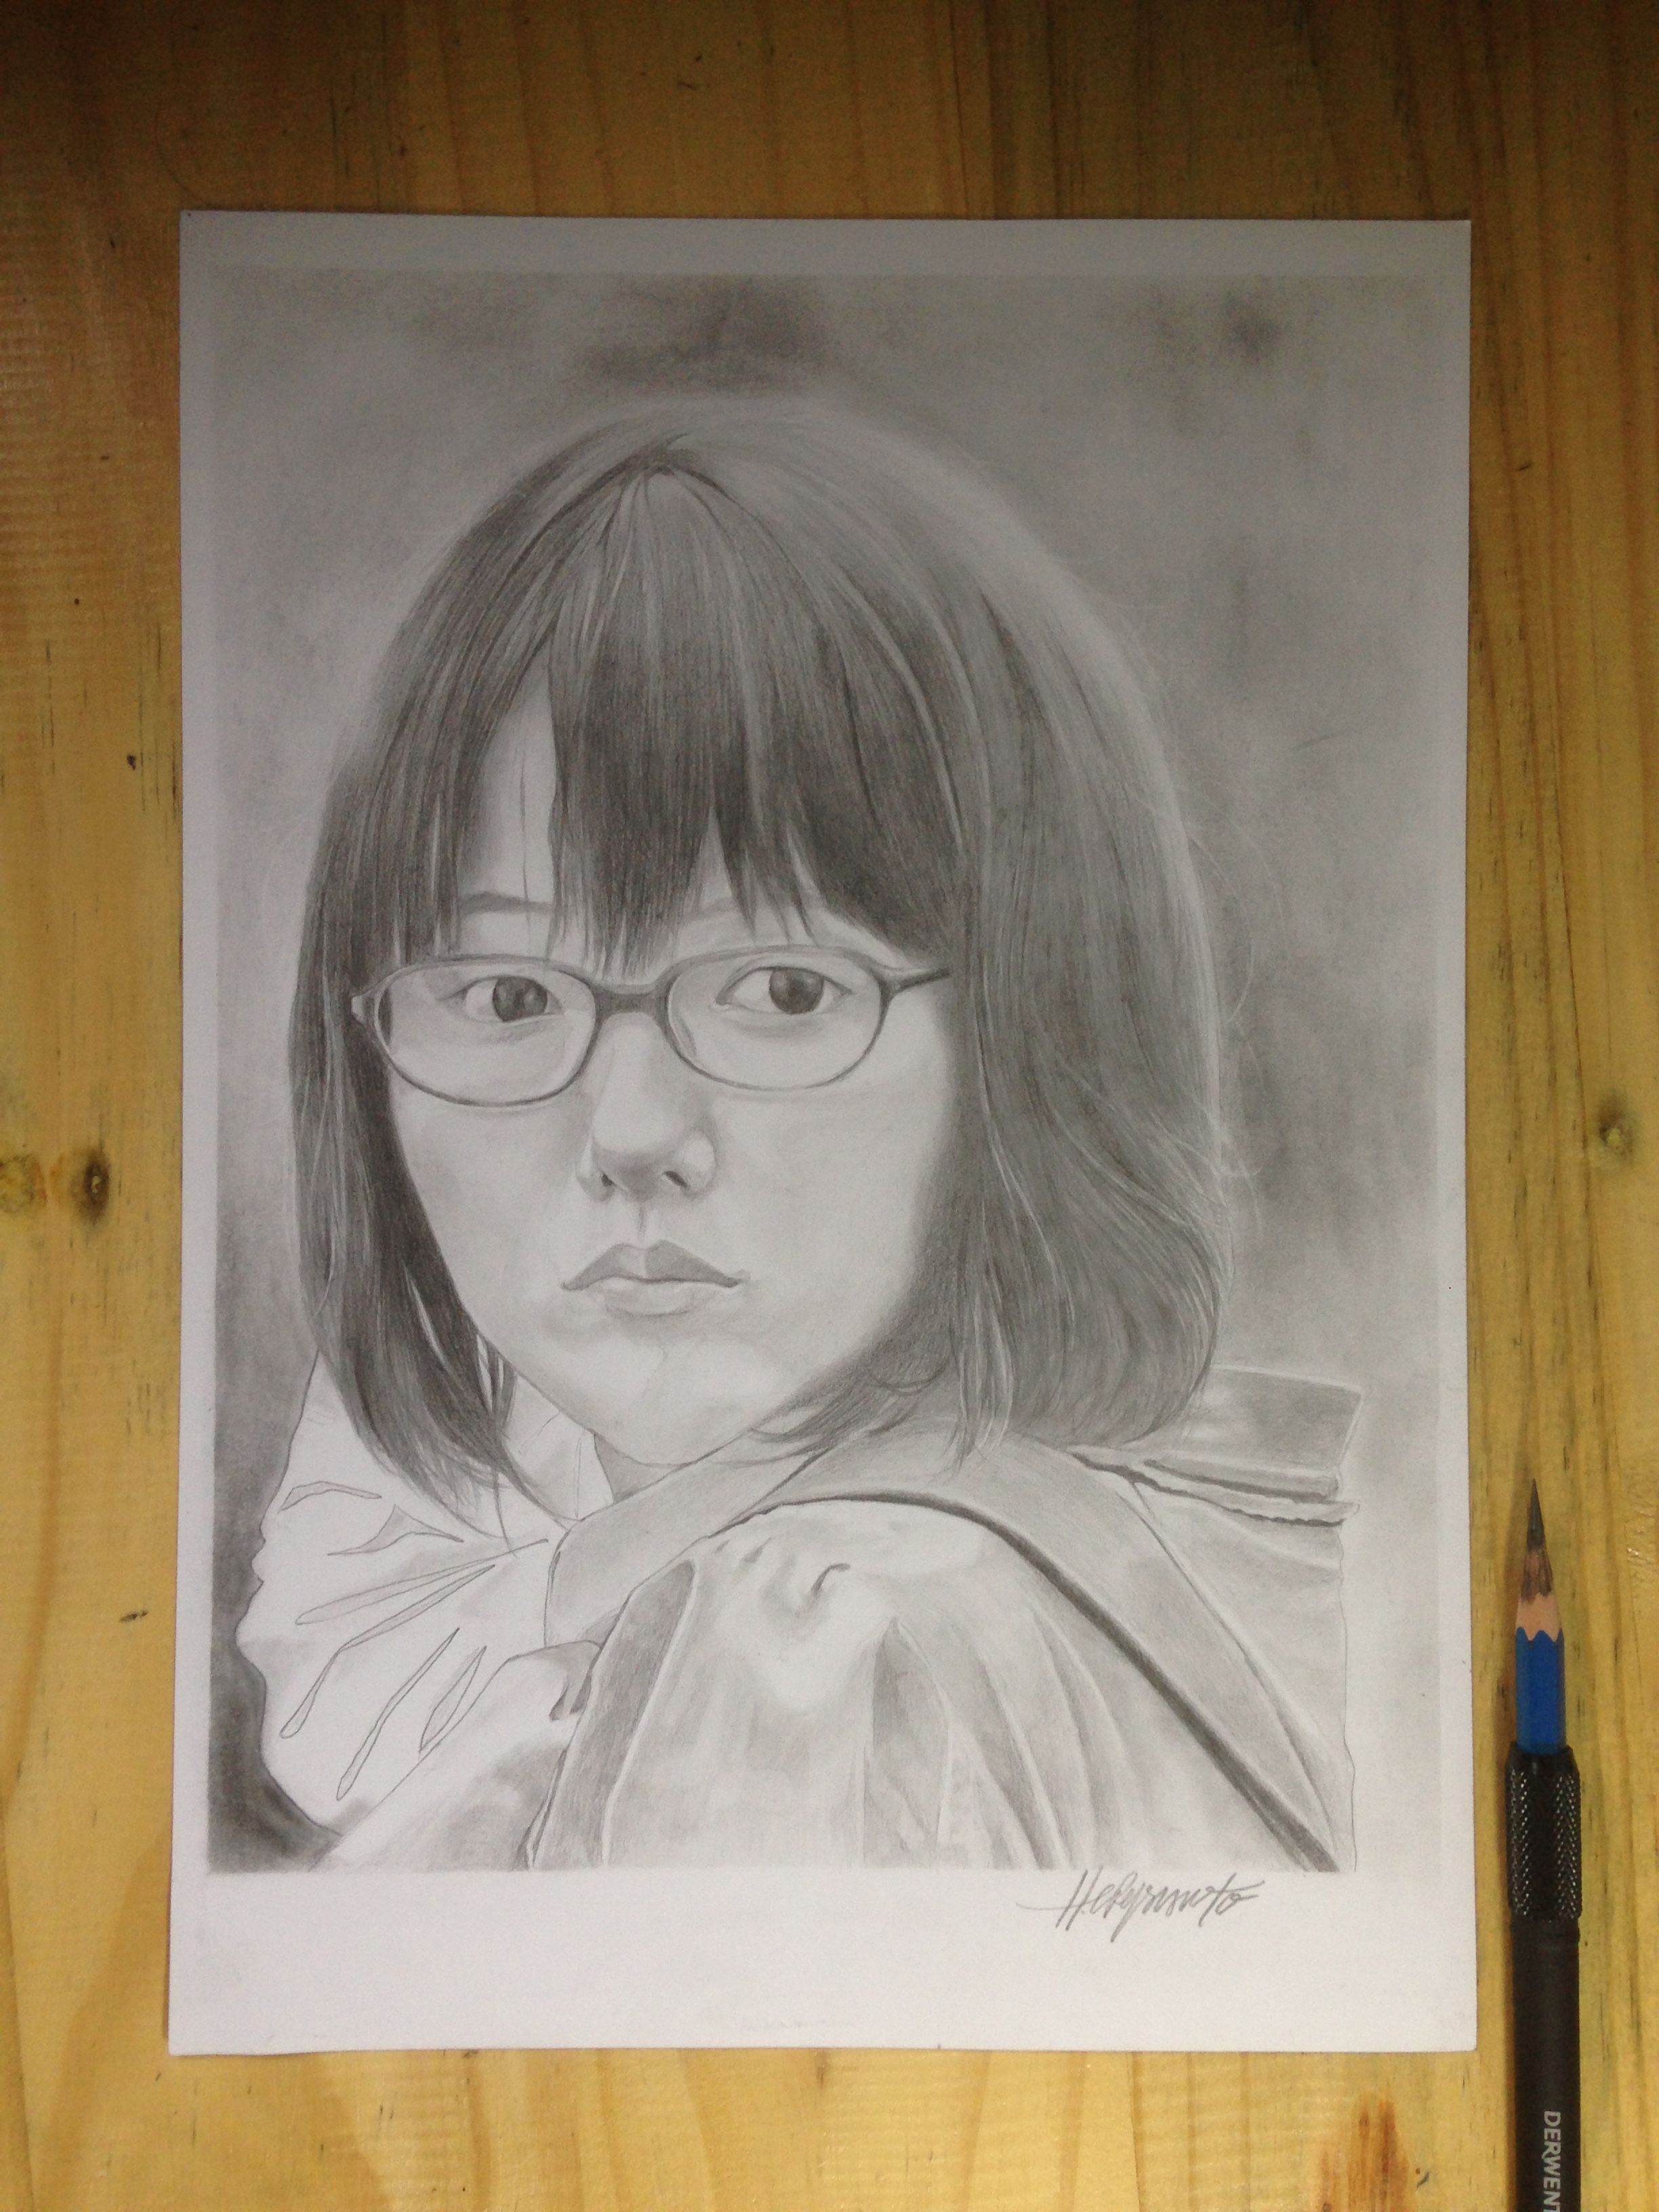 Aoimiyazaki artist sketch pencil drawing